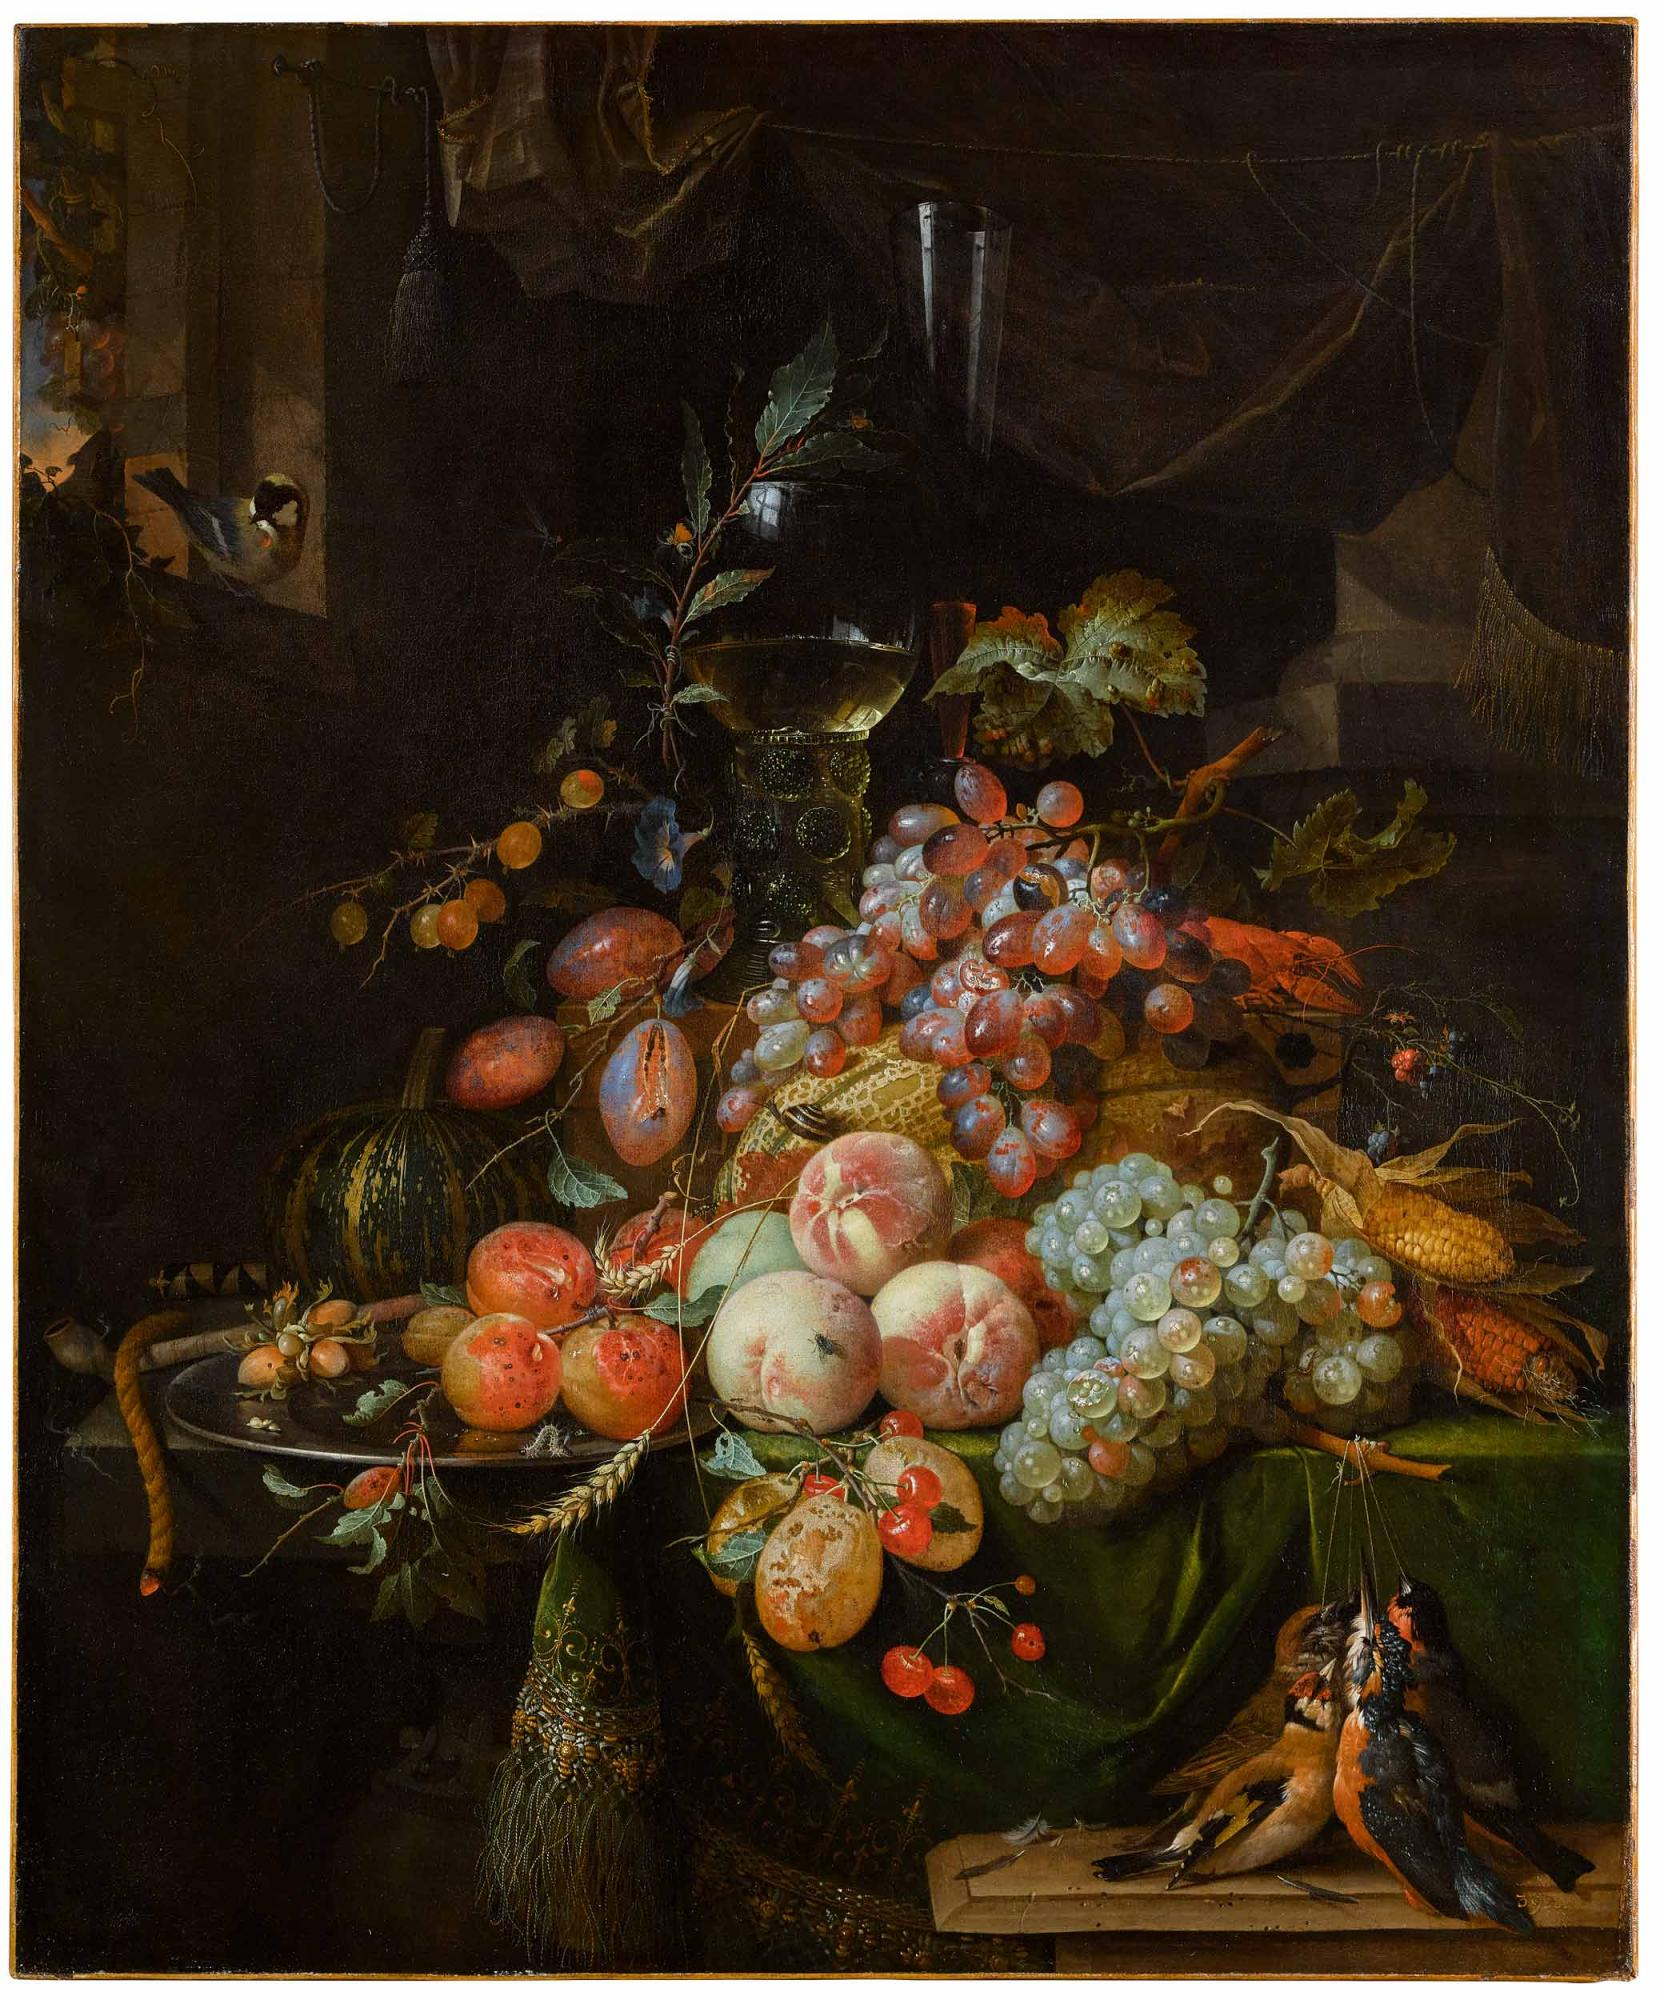 Lot-60-Abraham-Mignon-Still-Life-with-Plums-Peaches-Apricot-Grapes-and-a-Melon-with-a-Roemer-Glass-and-a-Flute-Glass-all-on-a-Draped-Table-a-Goldfinch-on-the-Window-Sill.jpg